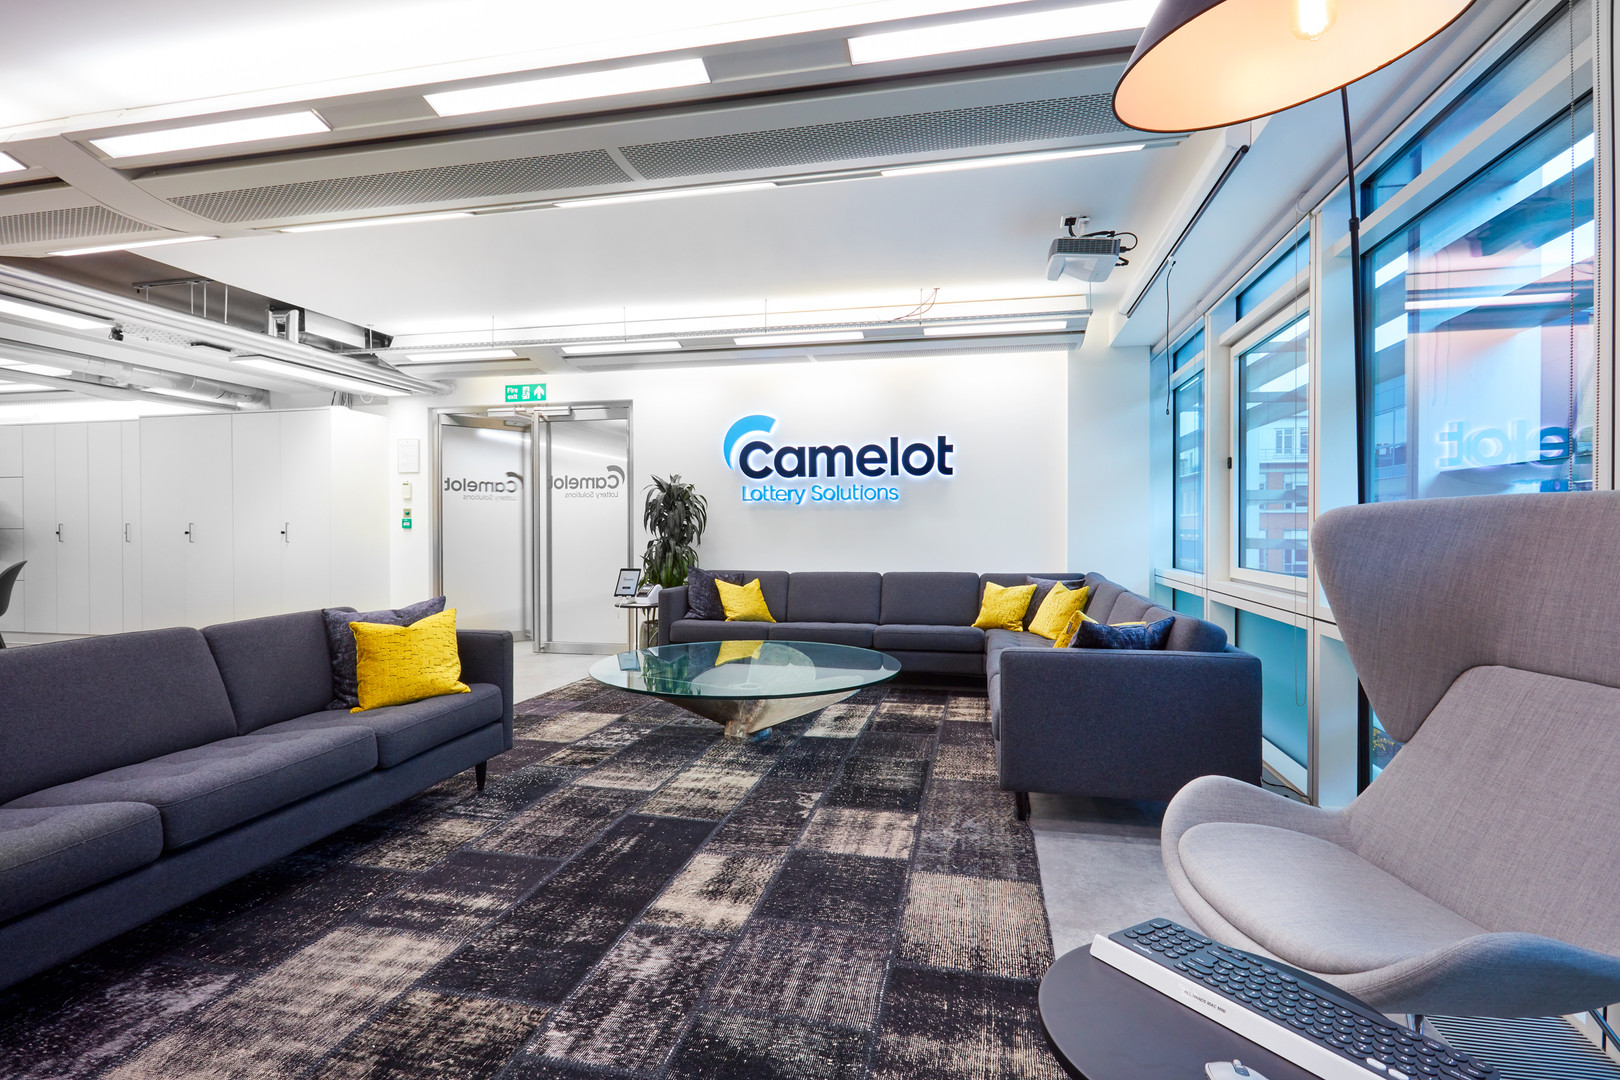 Camelot Lounge